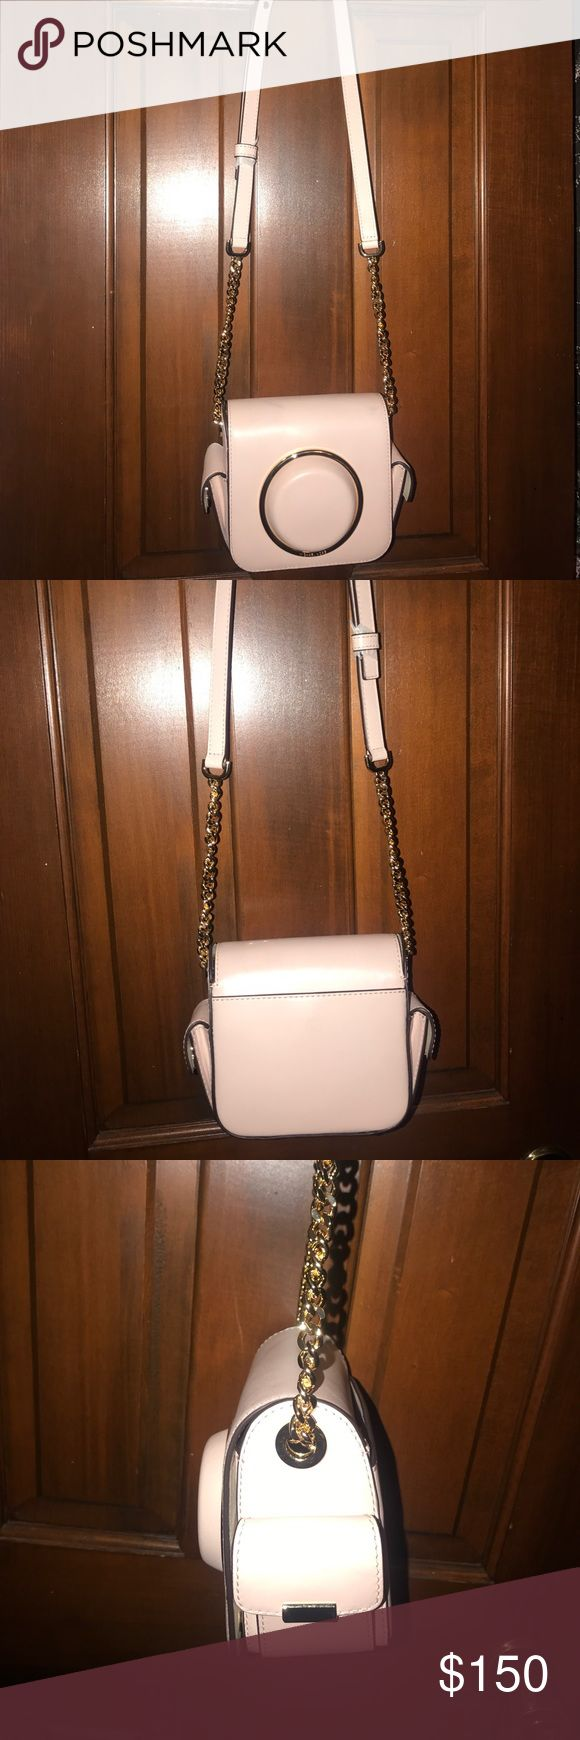 Small Michael Kors purse Small pale pink over the shoulder bag. Multiple pockets with built in card slots. Tags removed but never used. Michael Kors Bags Shoulder Bags